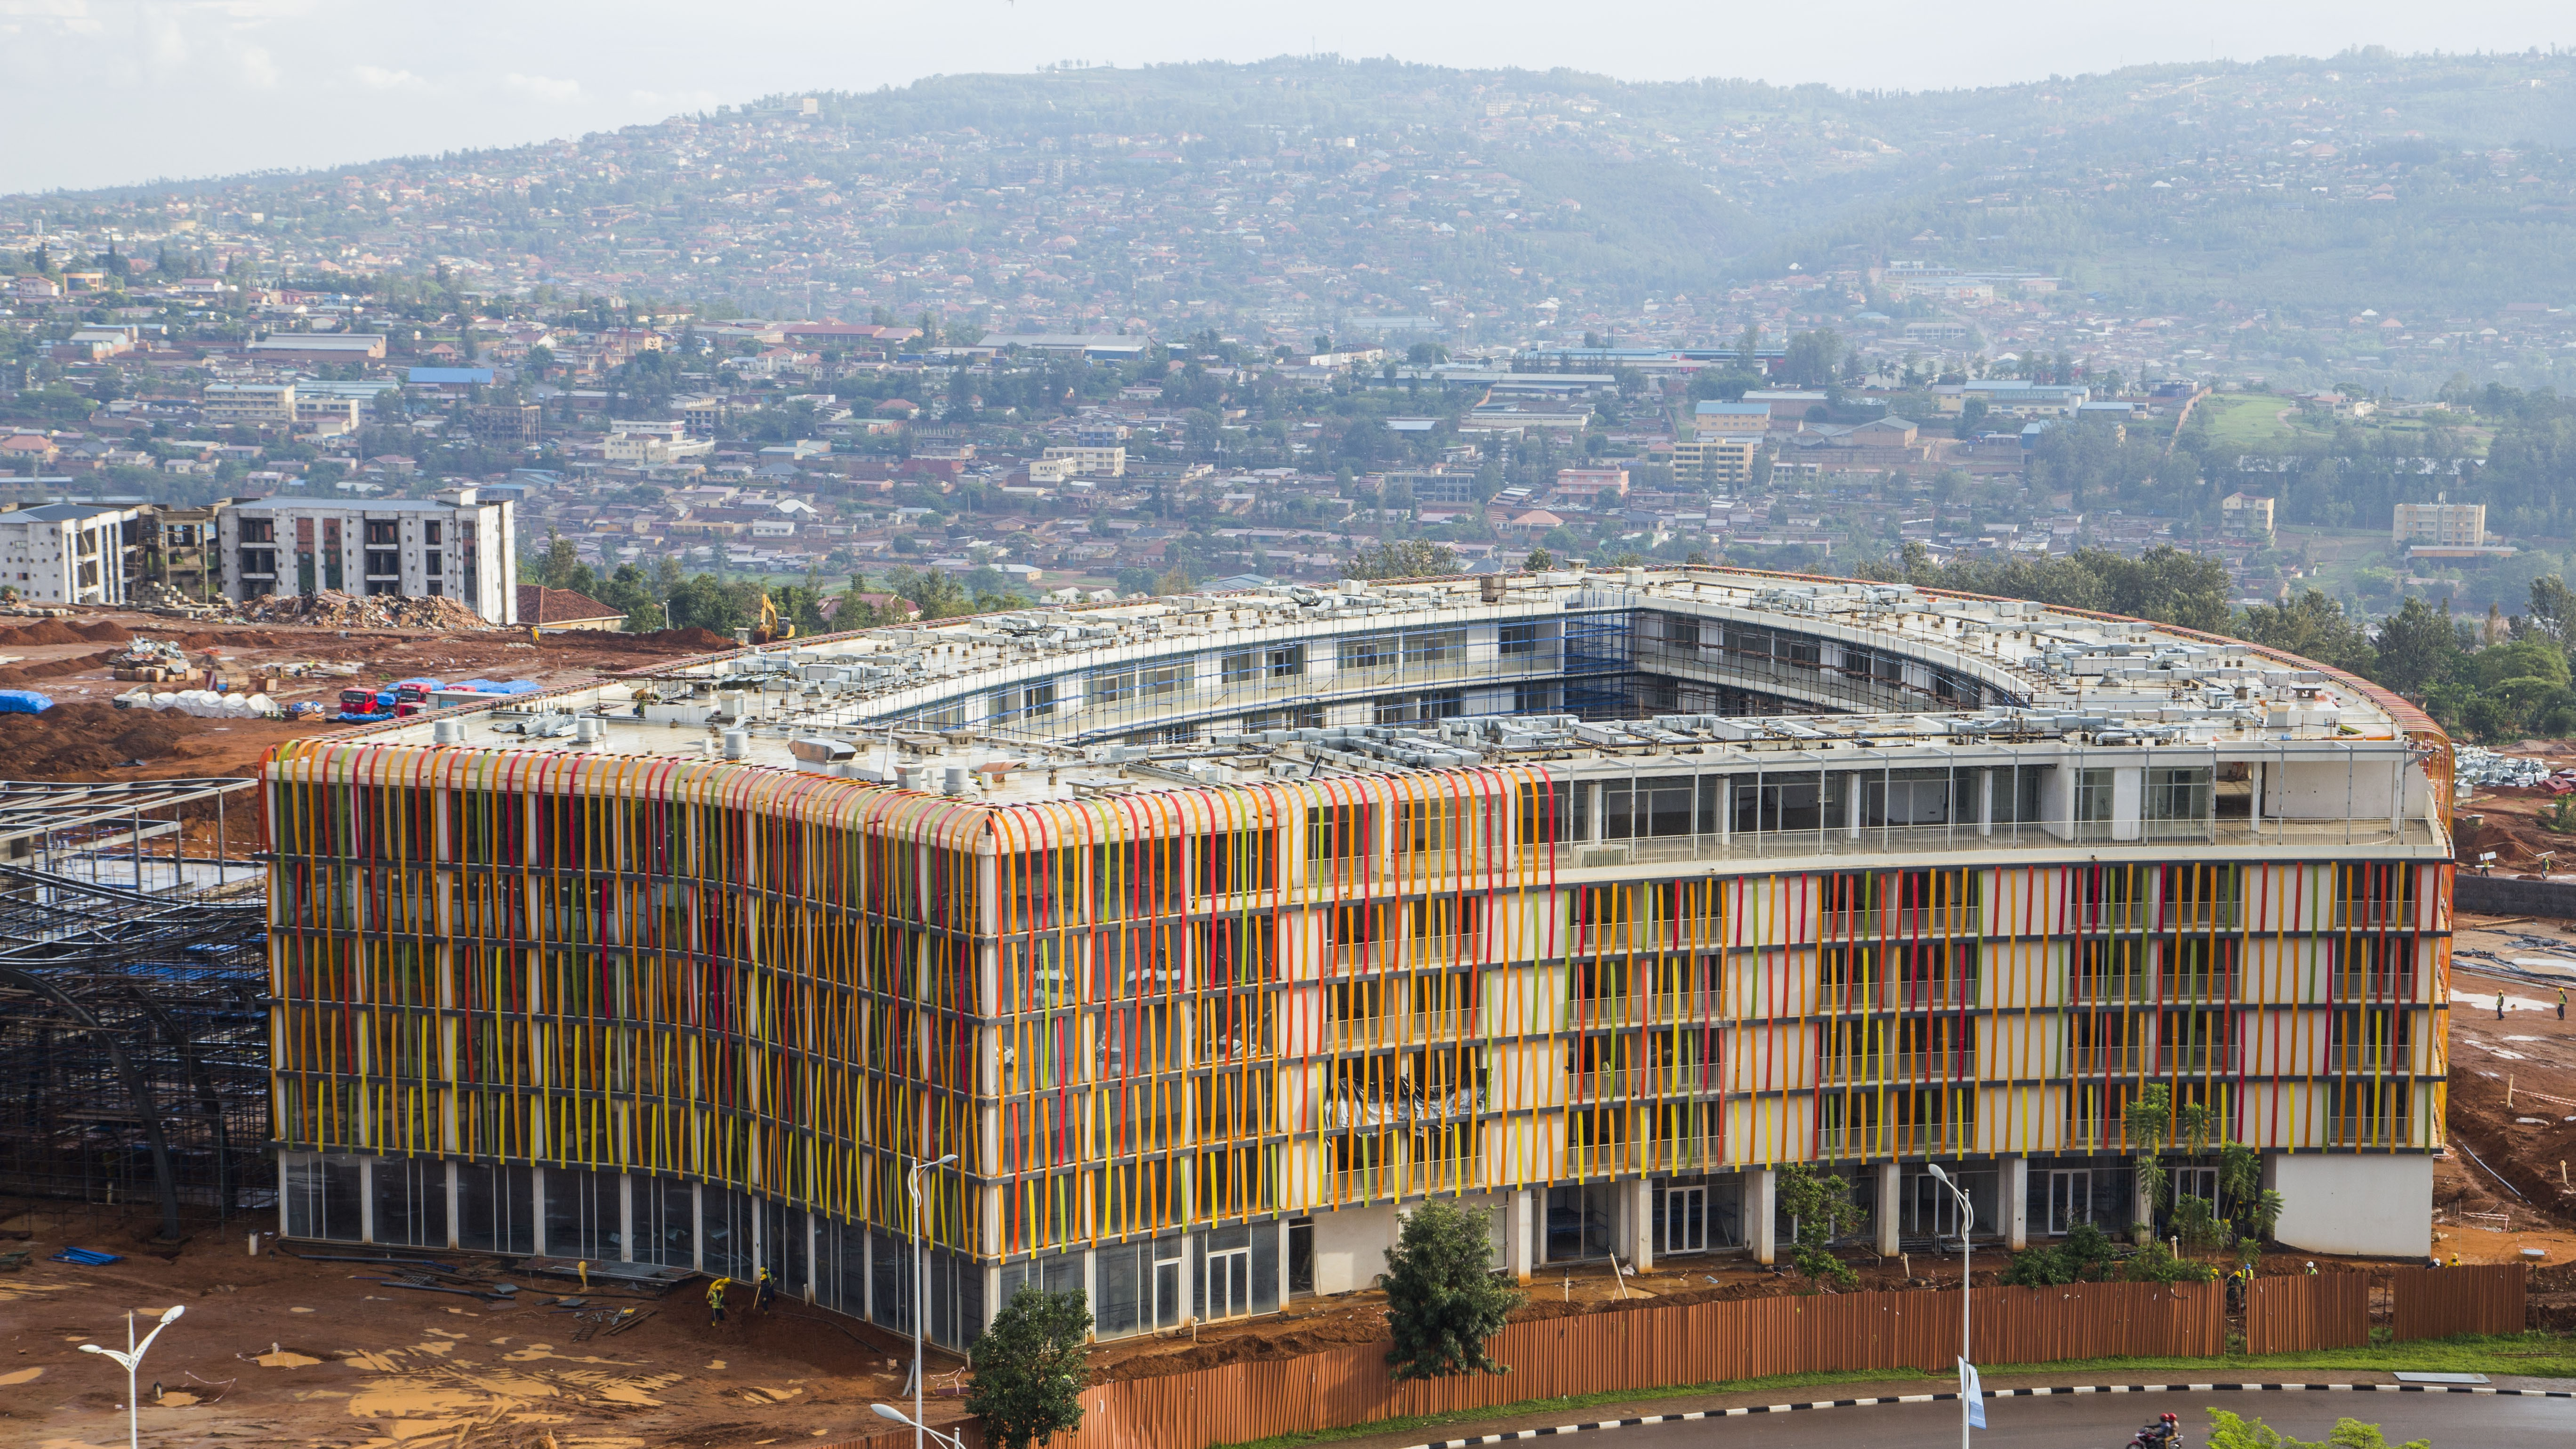 The yet to be completed Radisson Blue Hotel which will be part of the Kigali Convention Center.Photo:Cyril NDEGEYA